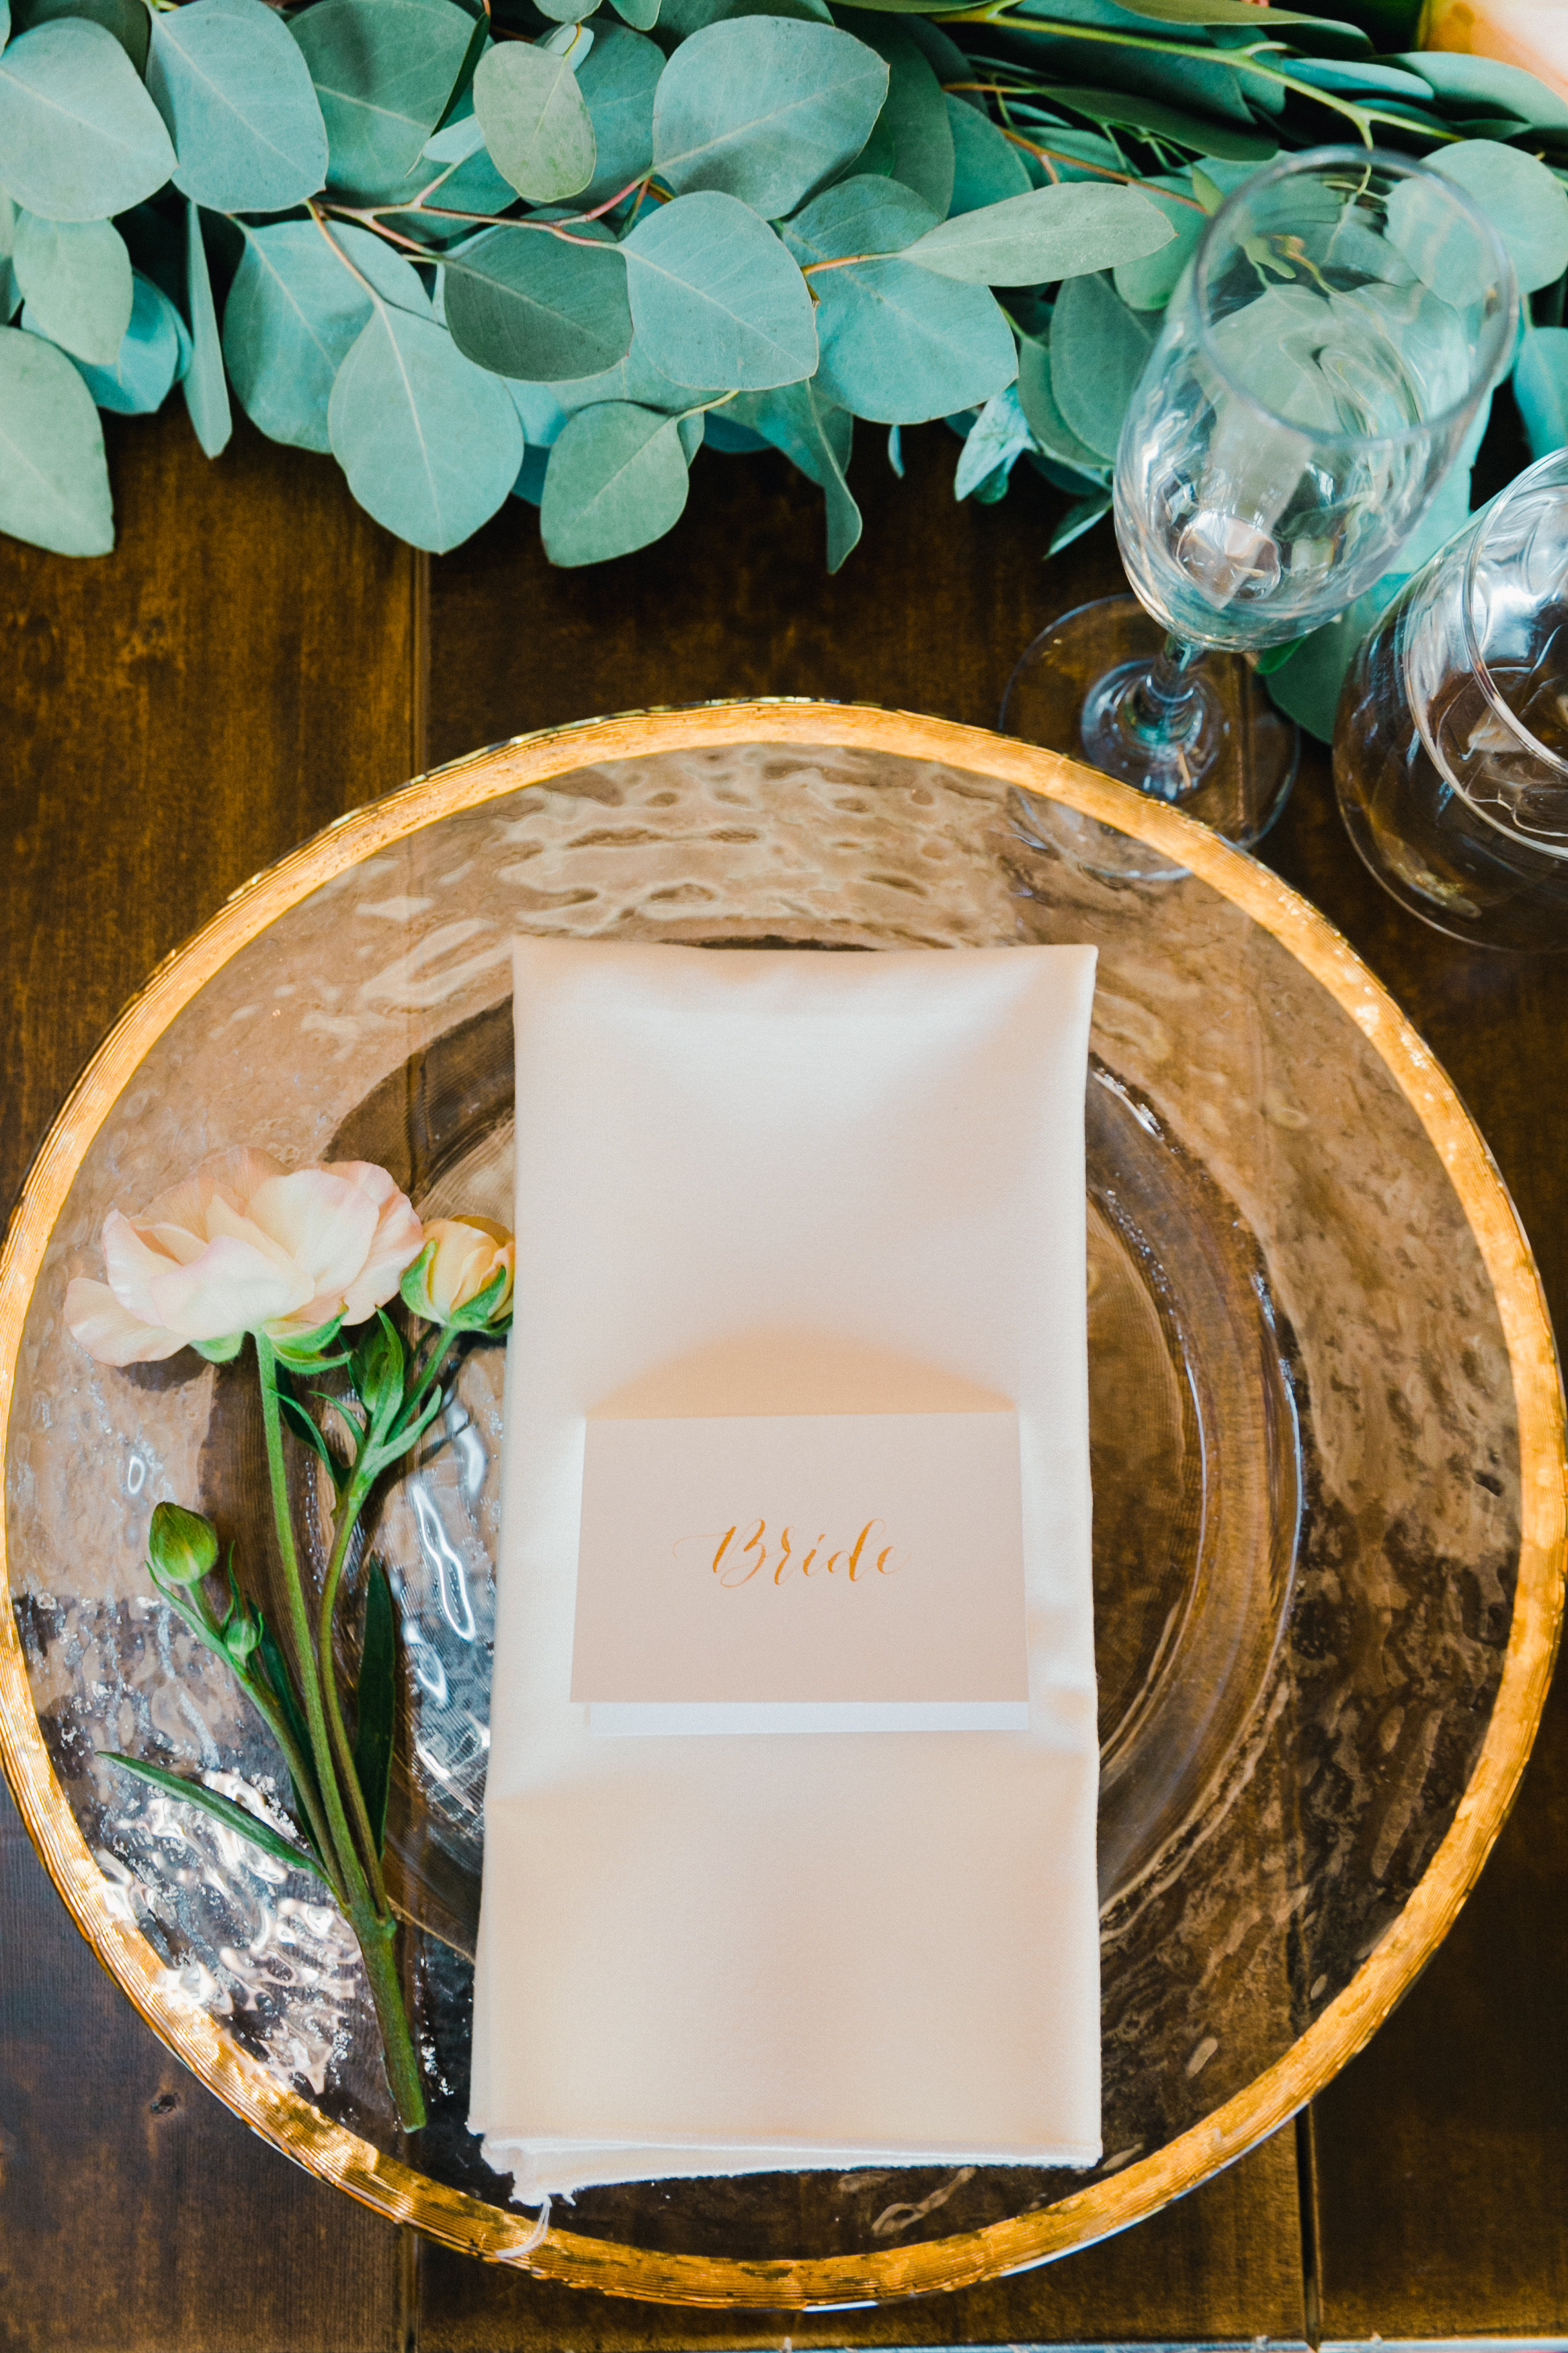 Yosemite wedding place cards calligraphy items by paperloveme13.jpg